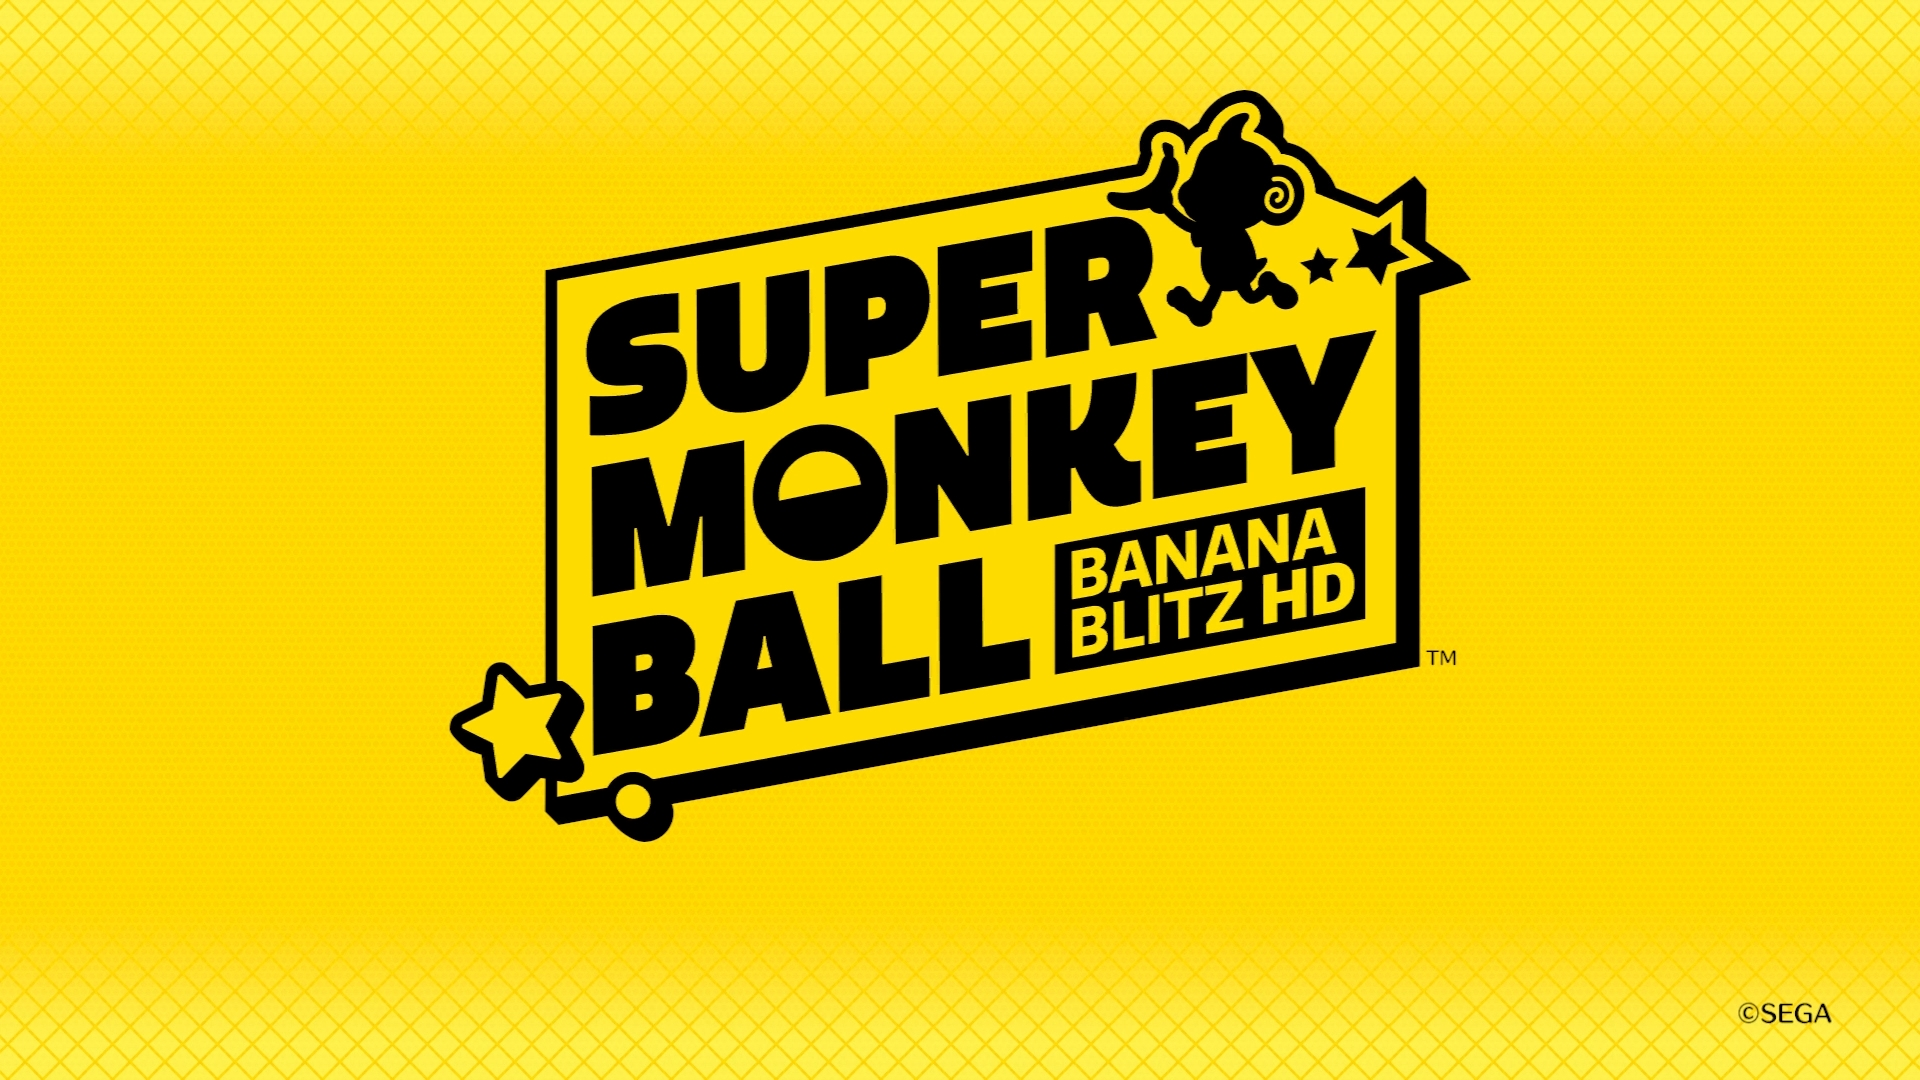 Anunciado Super Monkey Ball Banana Blitz HD para consolas y PC